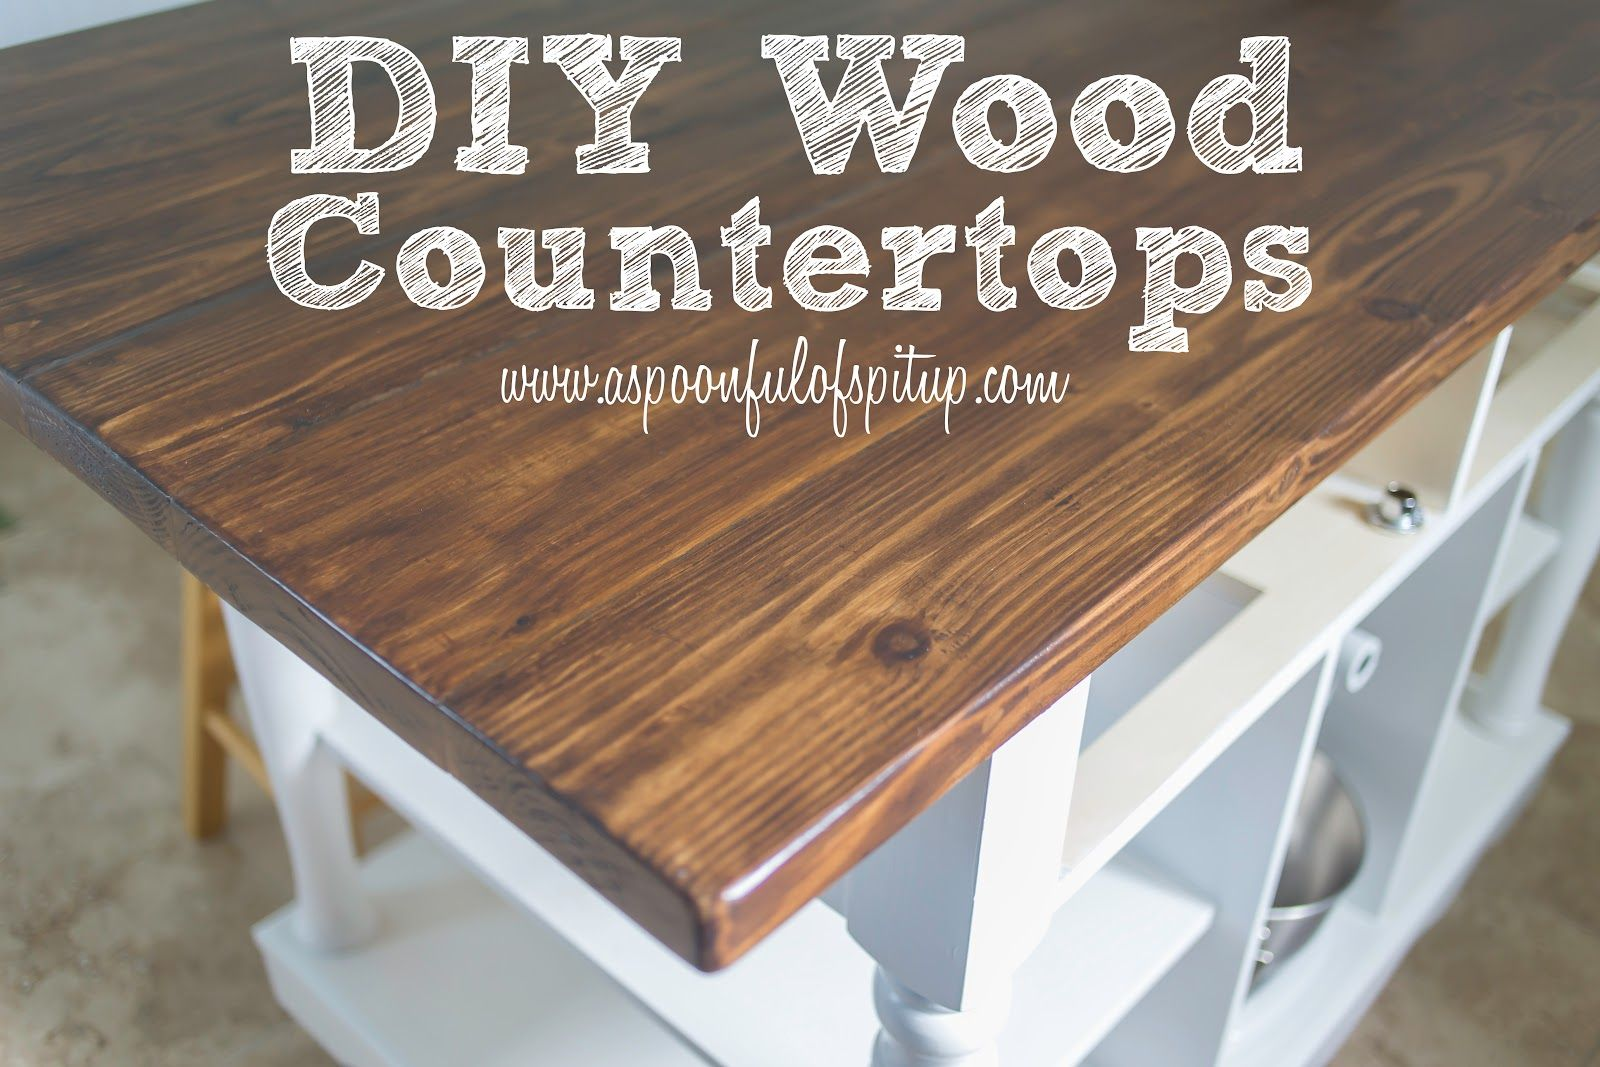 wooden kitchen countertops Charming Butcher Block Countertops For Kitchen Furniture Inspiration A Spoonful Of Spit Up DIY Wood Butcher Block Countertops